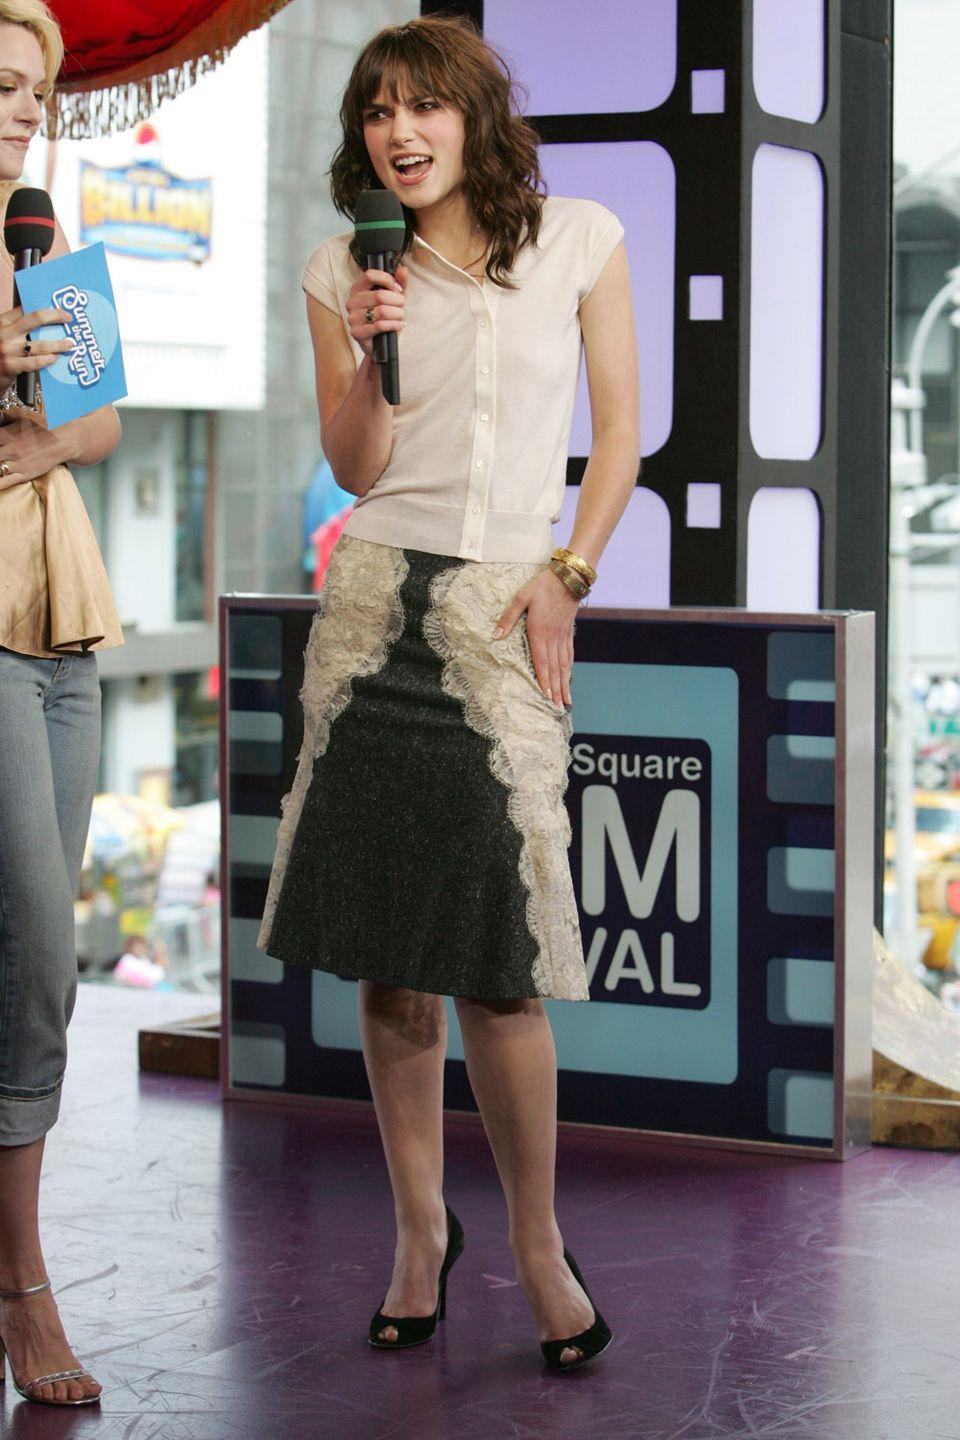 <p>Why is Keira Knightley serving up major Pam Beesly vibes here? I'm sorry but she clearly came straight from her day job as a receptionist at an office supply company, no?</p>